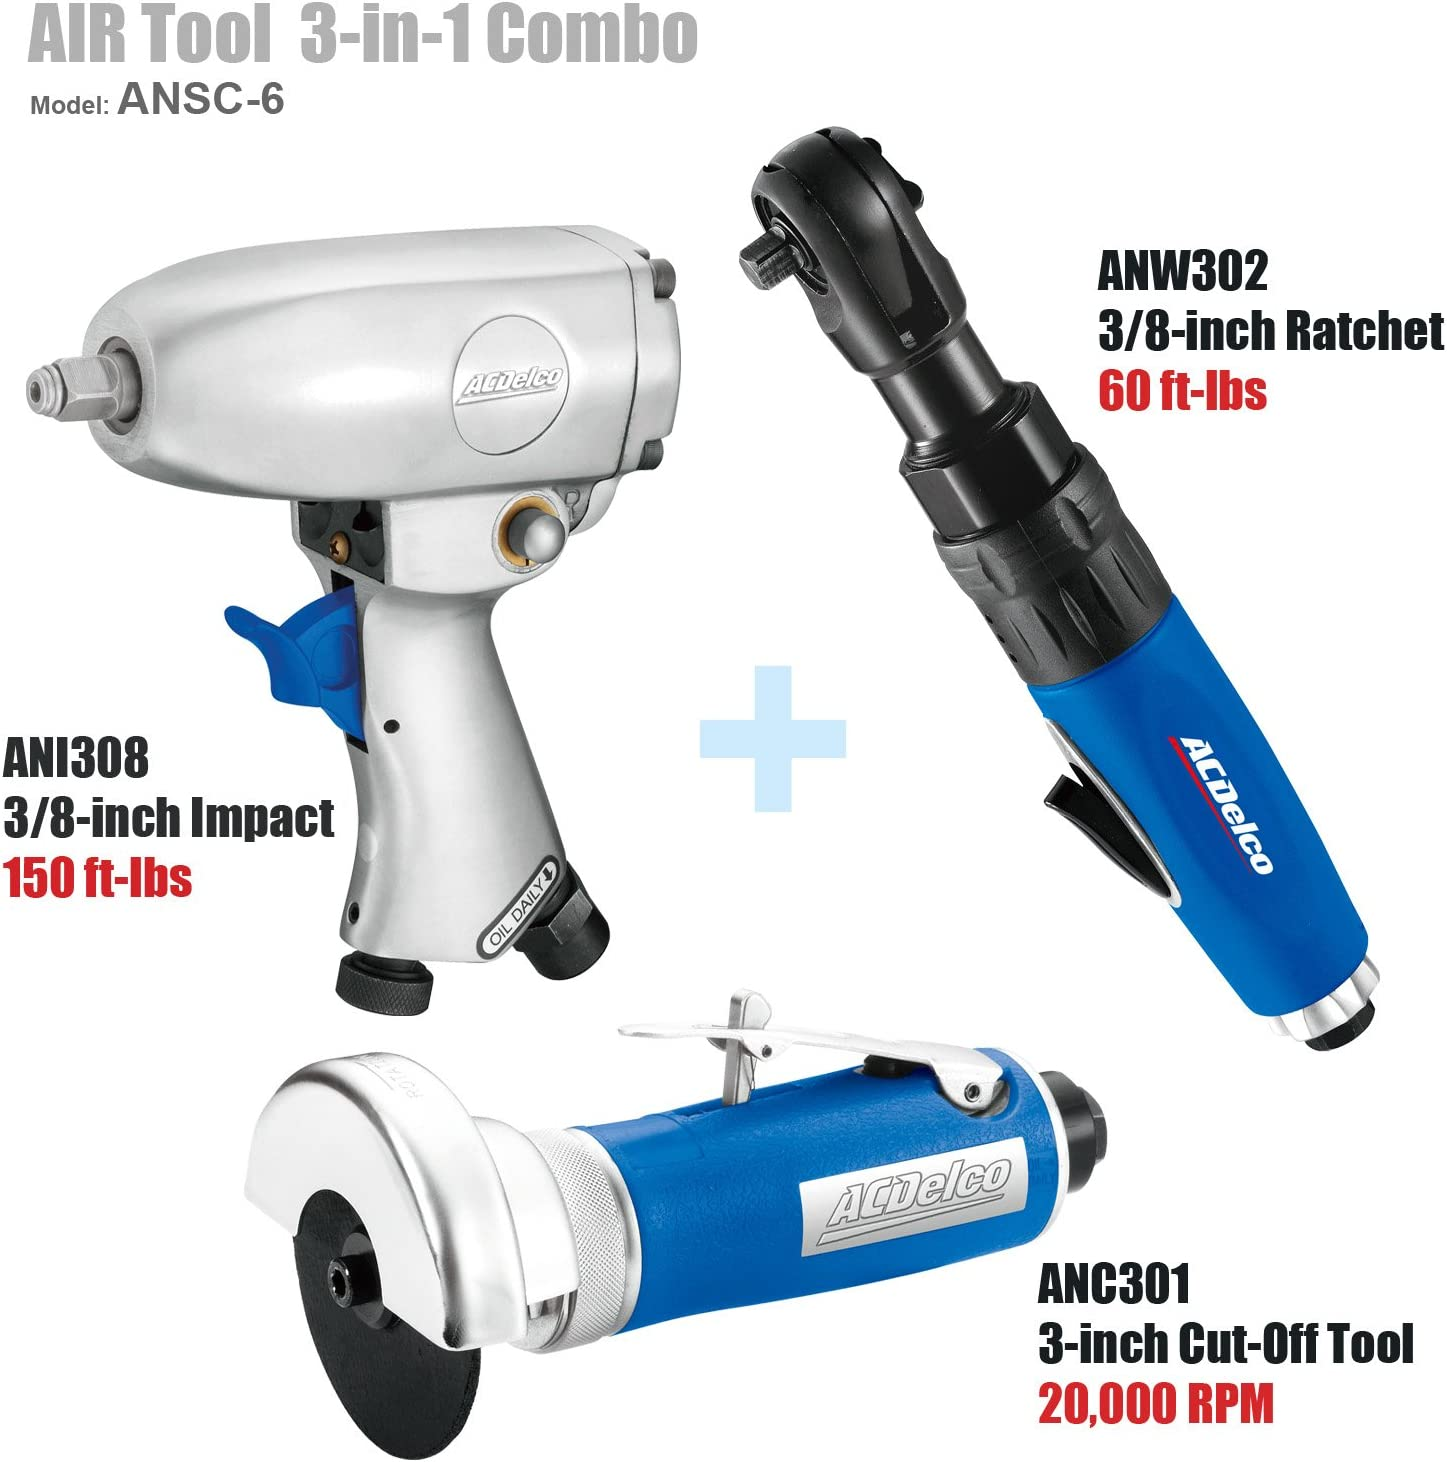 ACDelco ANW302 3//8-inch Air Ratchet Wrench 60 ft-lbs